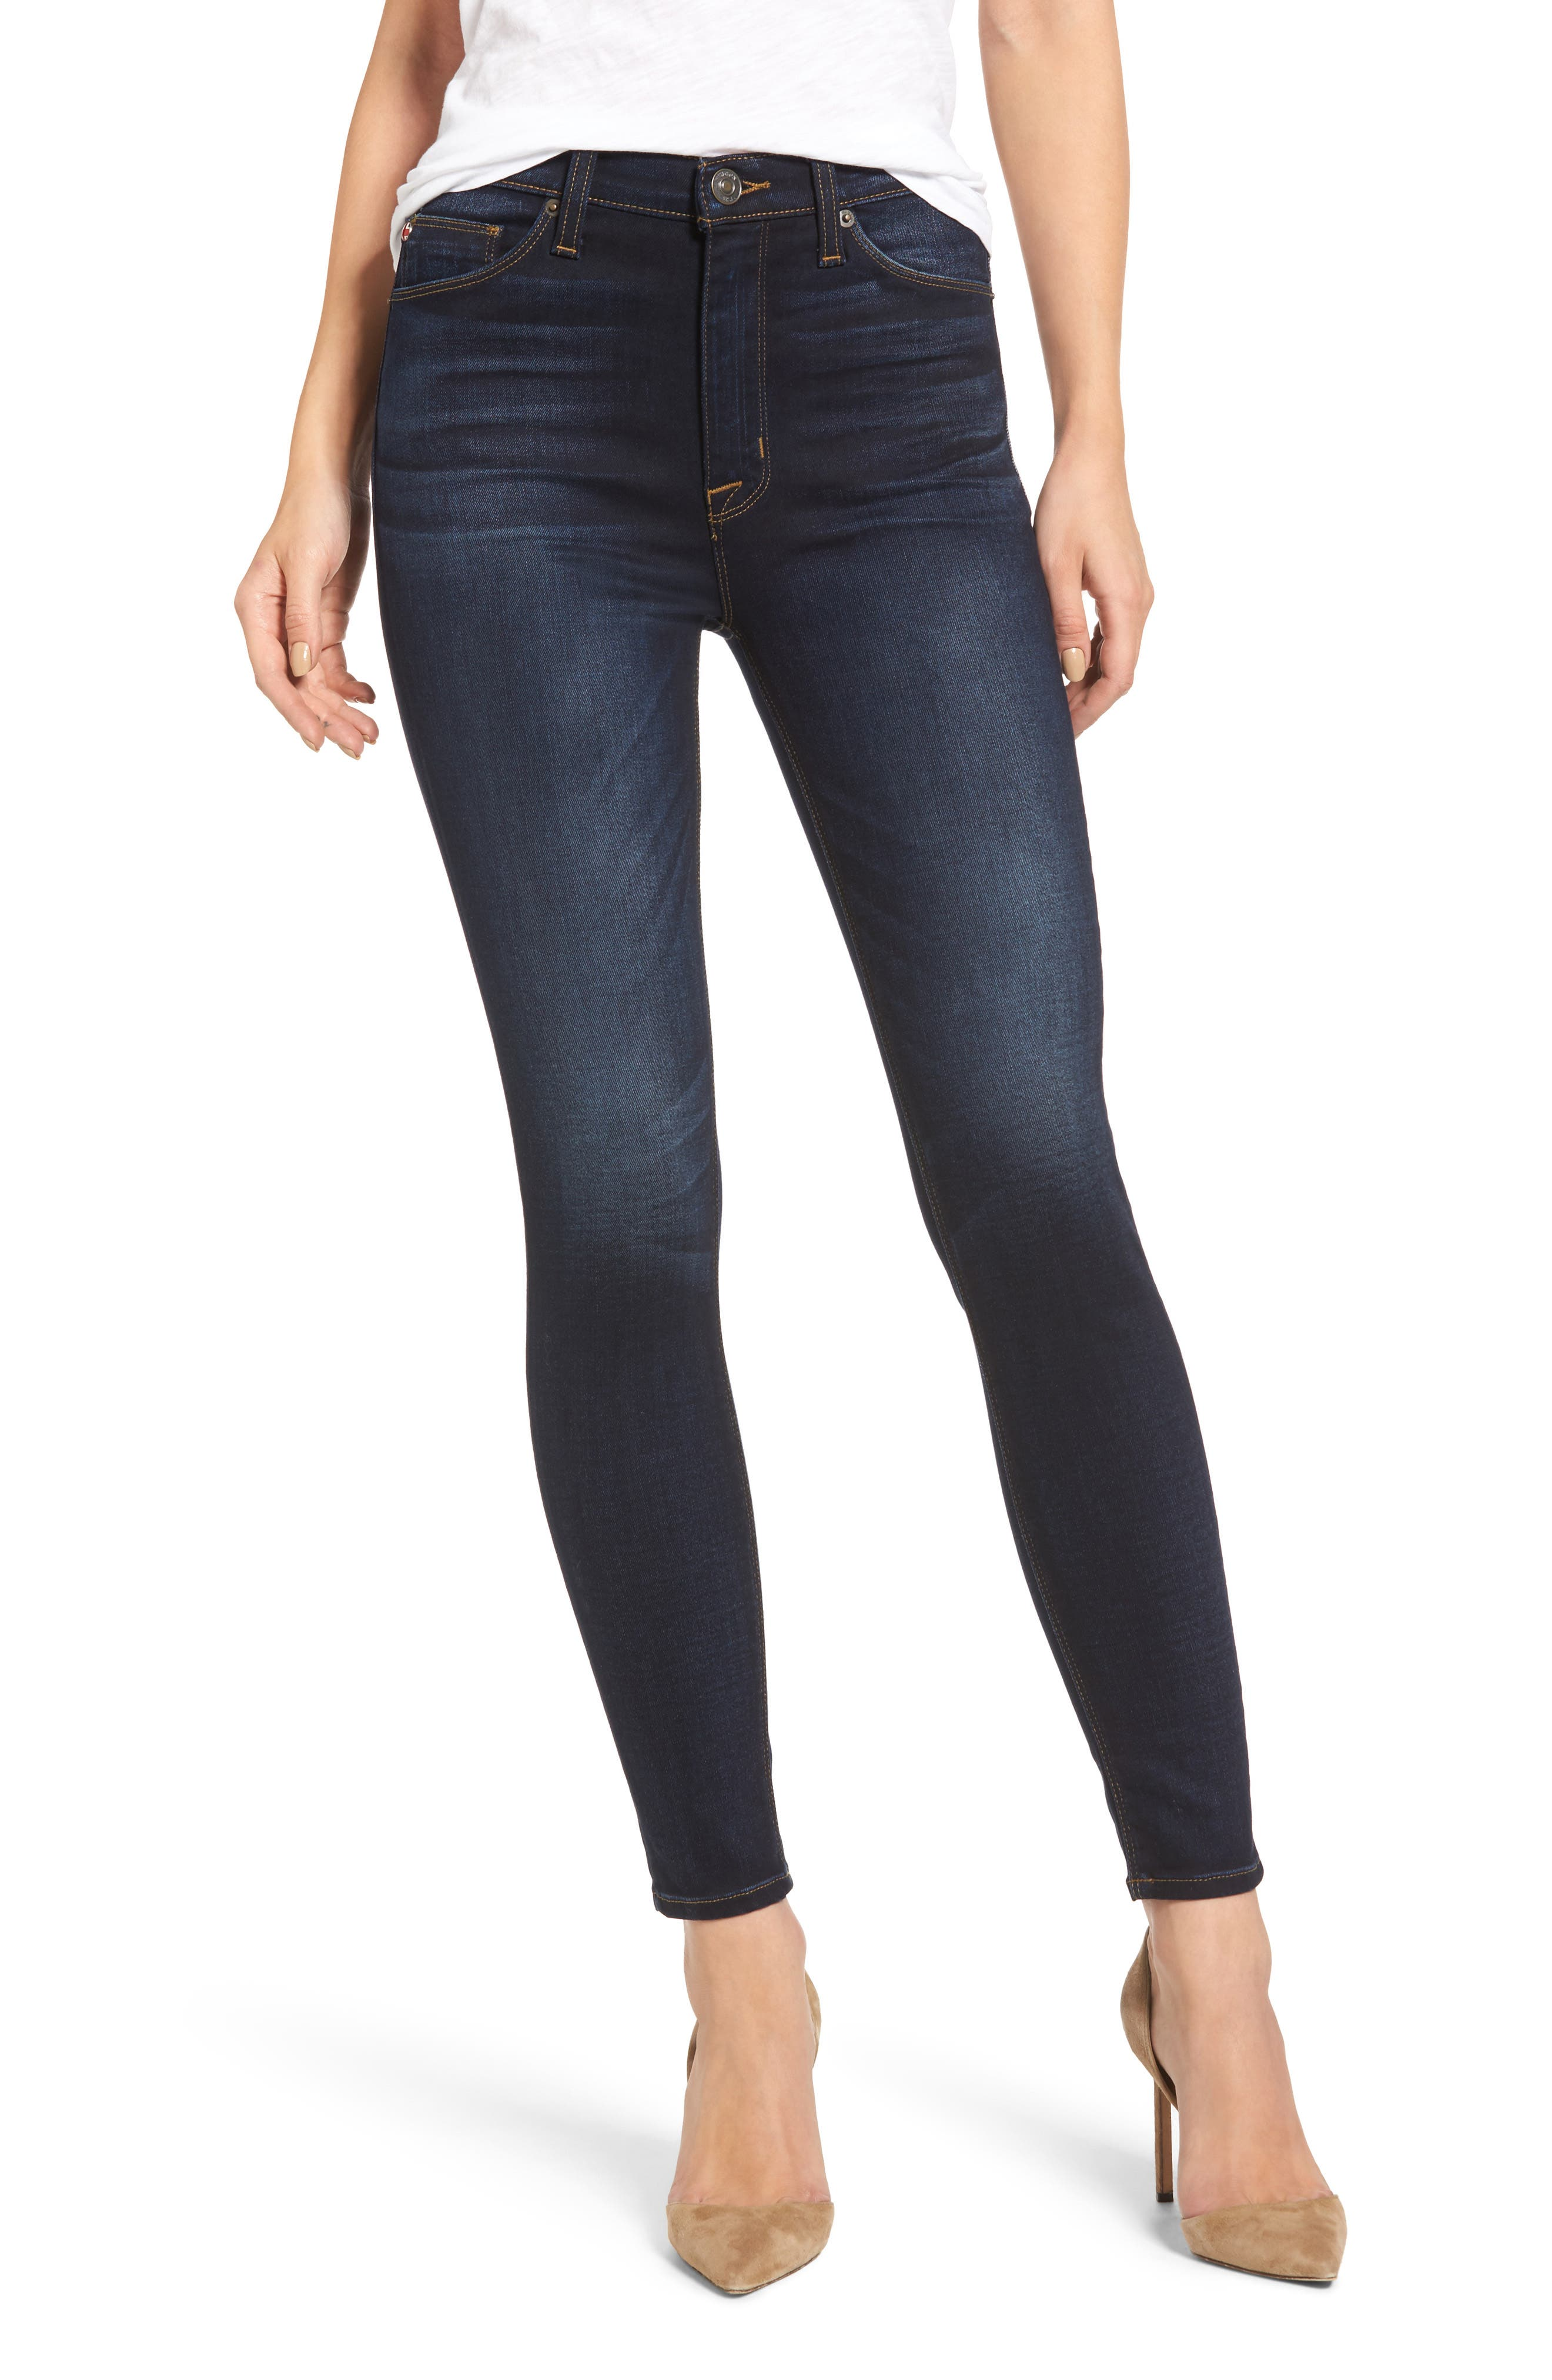 Barbara High Waist Super Skinny Jeans,                         Main,                         color, 402